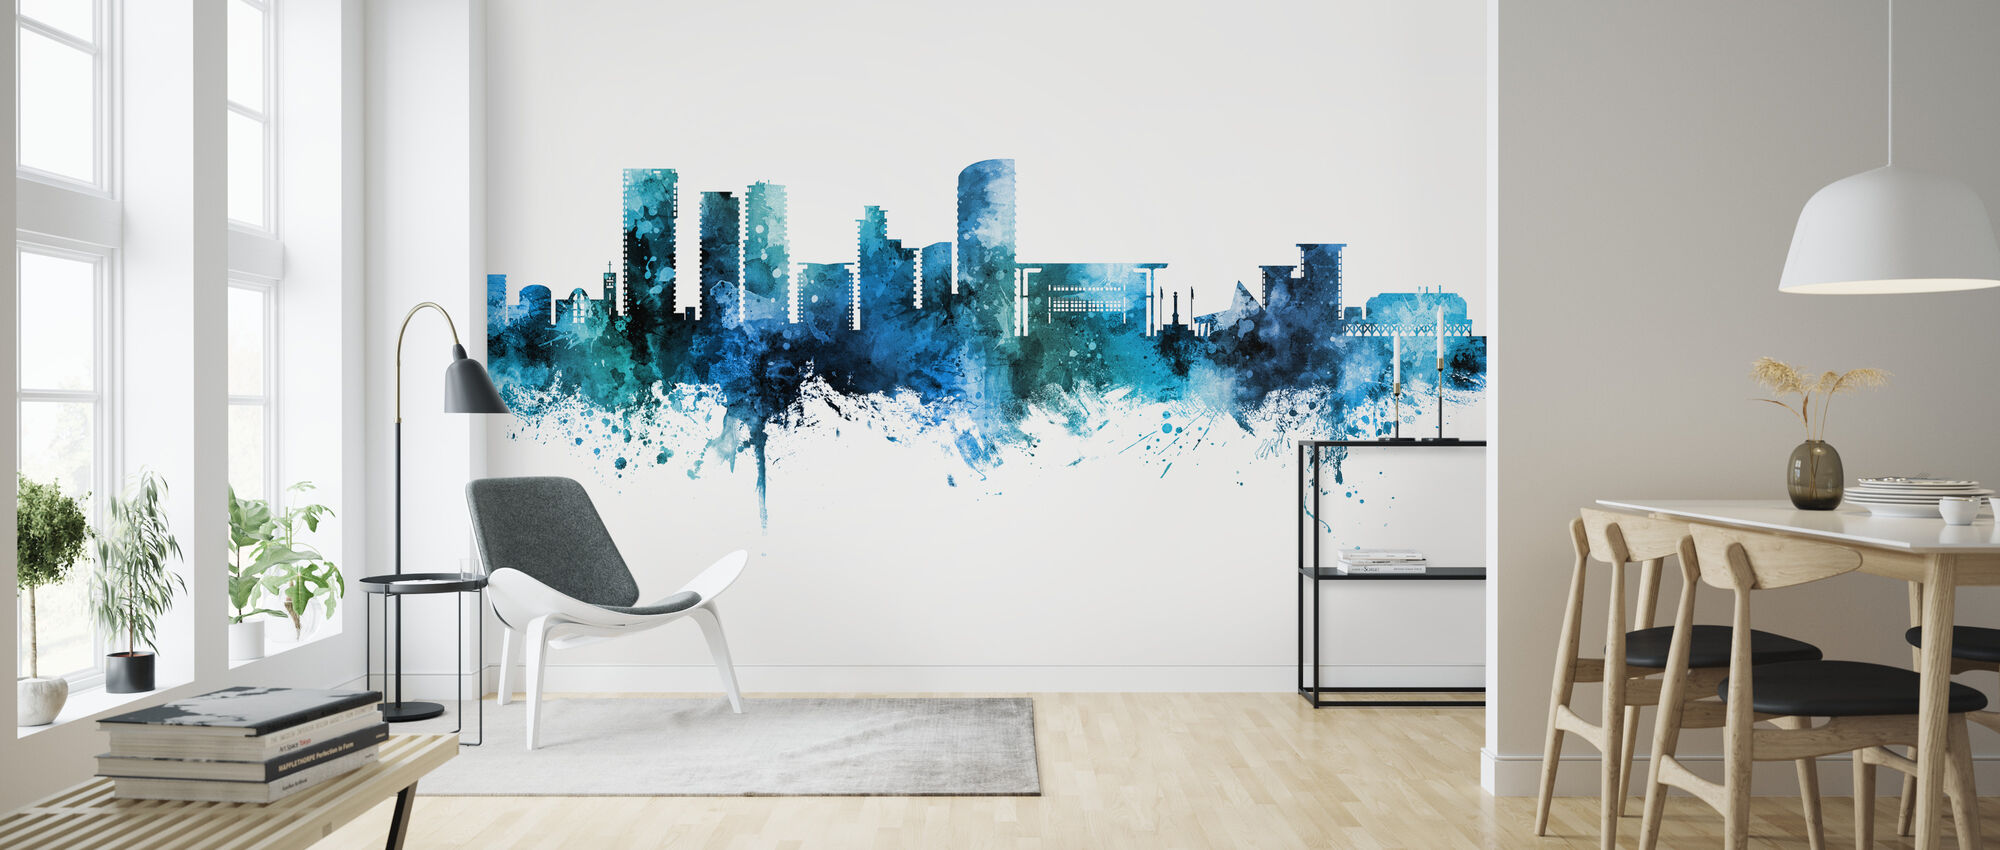 Darwin Australia Skyline - Wallpaper - Living Room